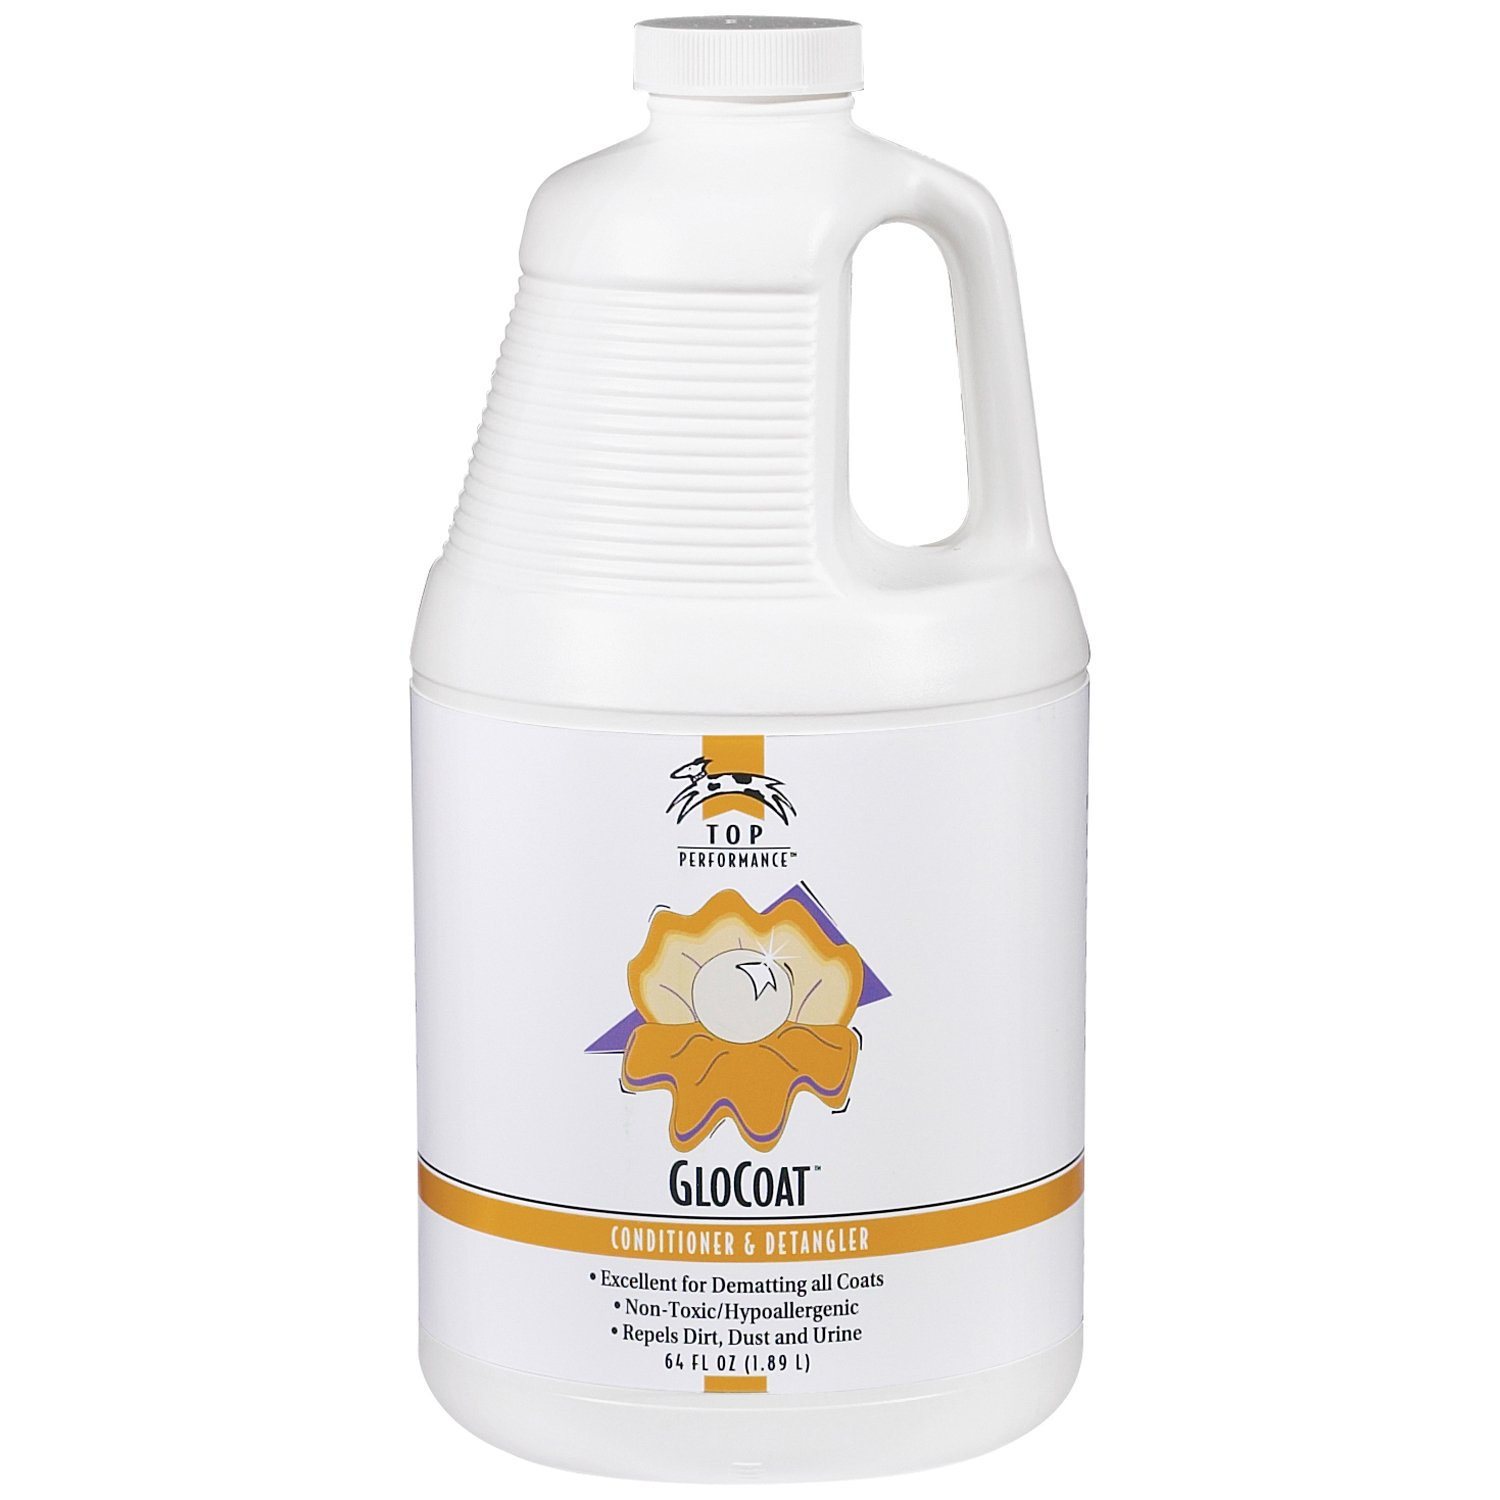 Top Performance GloCoat Pet Conditioner and Detangler, 64-Ounce